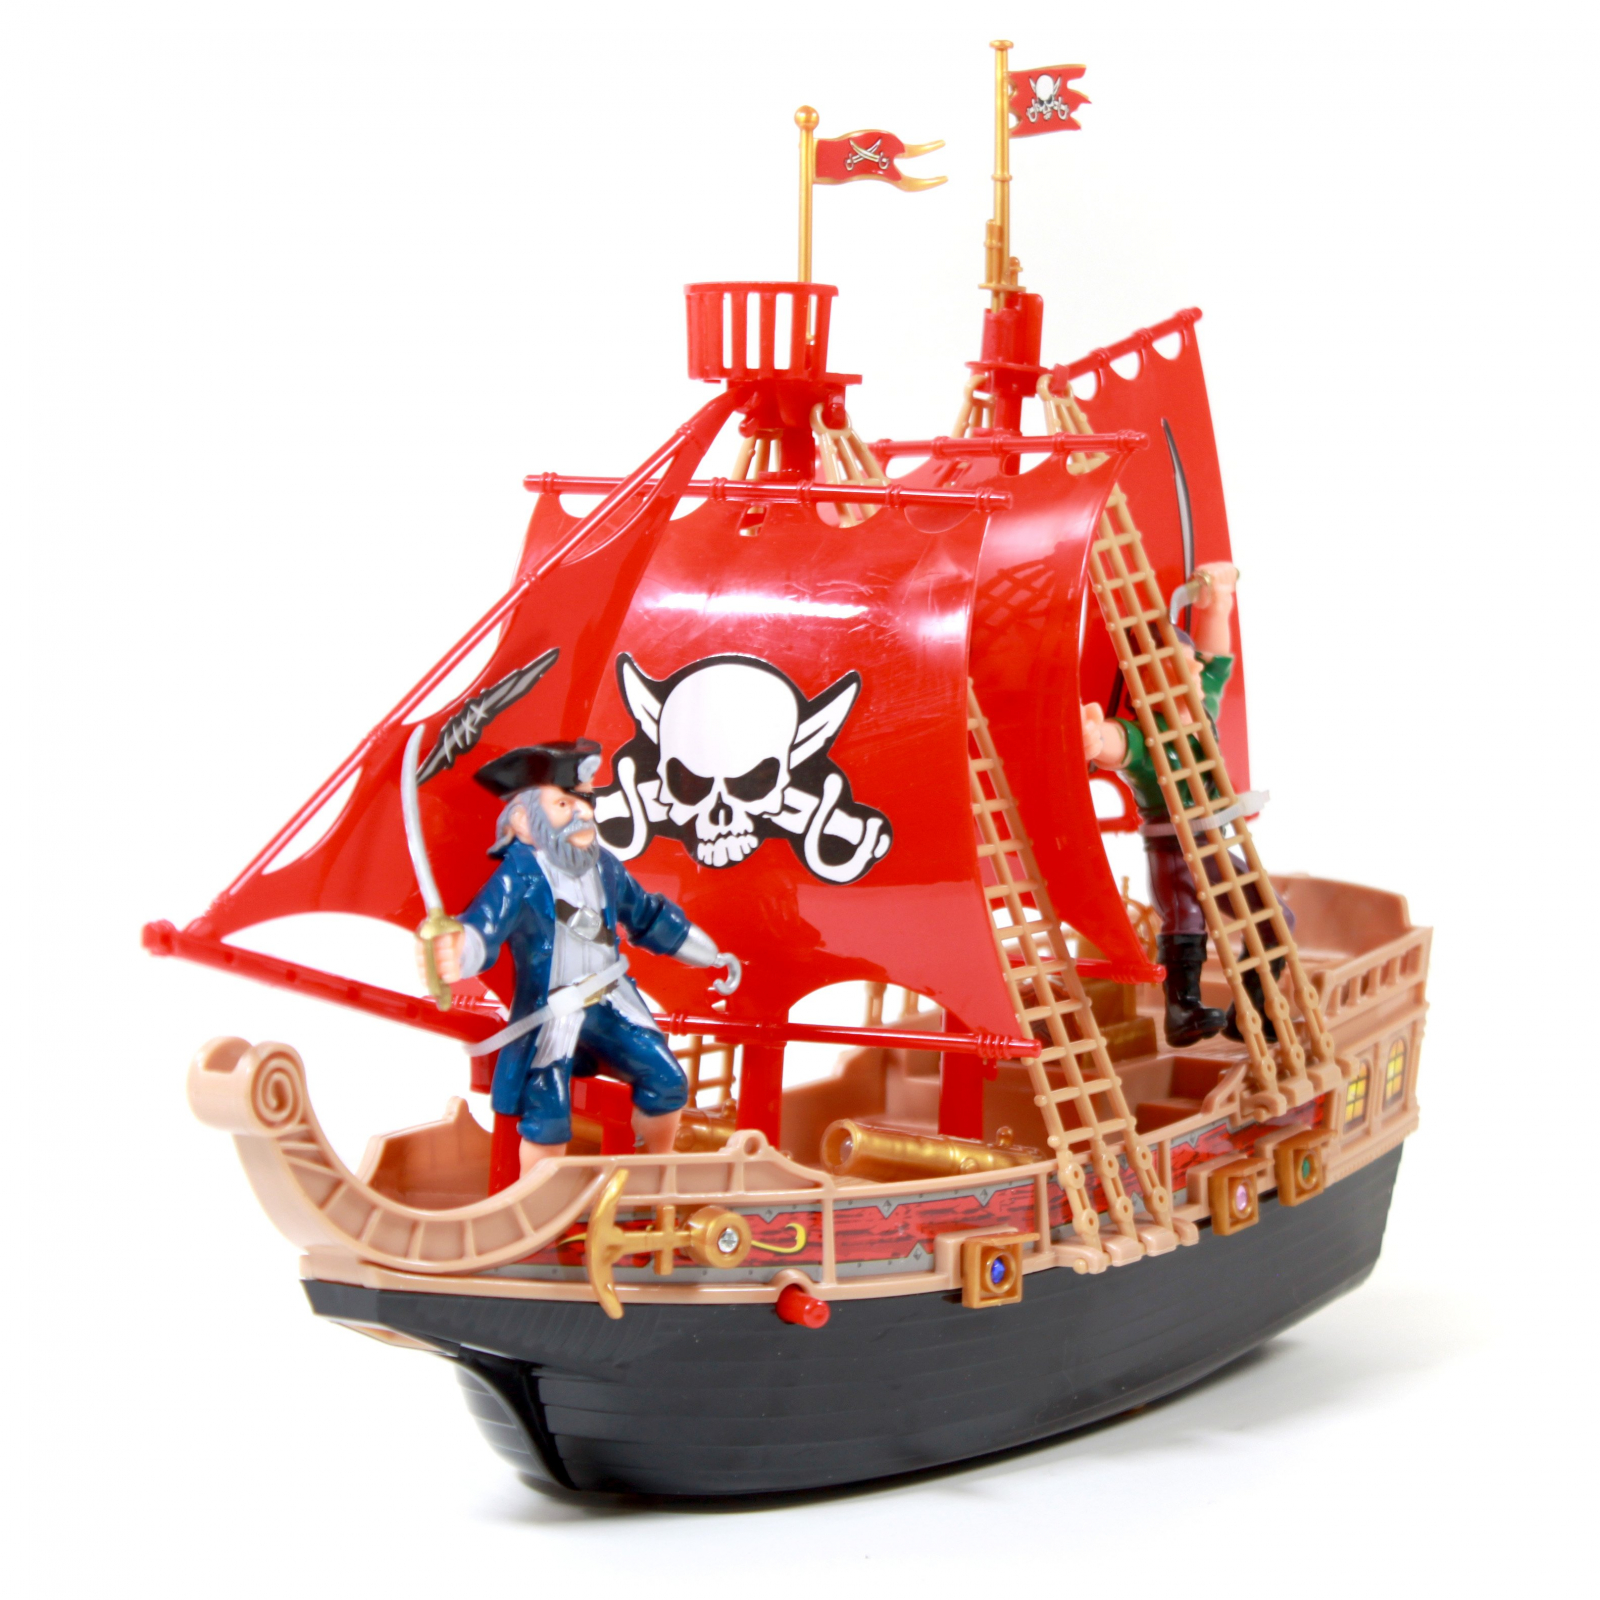 KidPlay Products Kids Pirate Ship Adventure Toy - Red